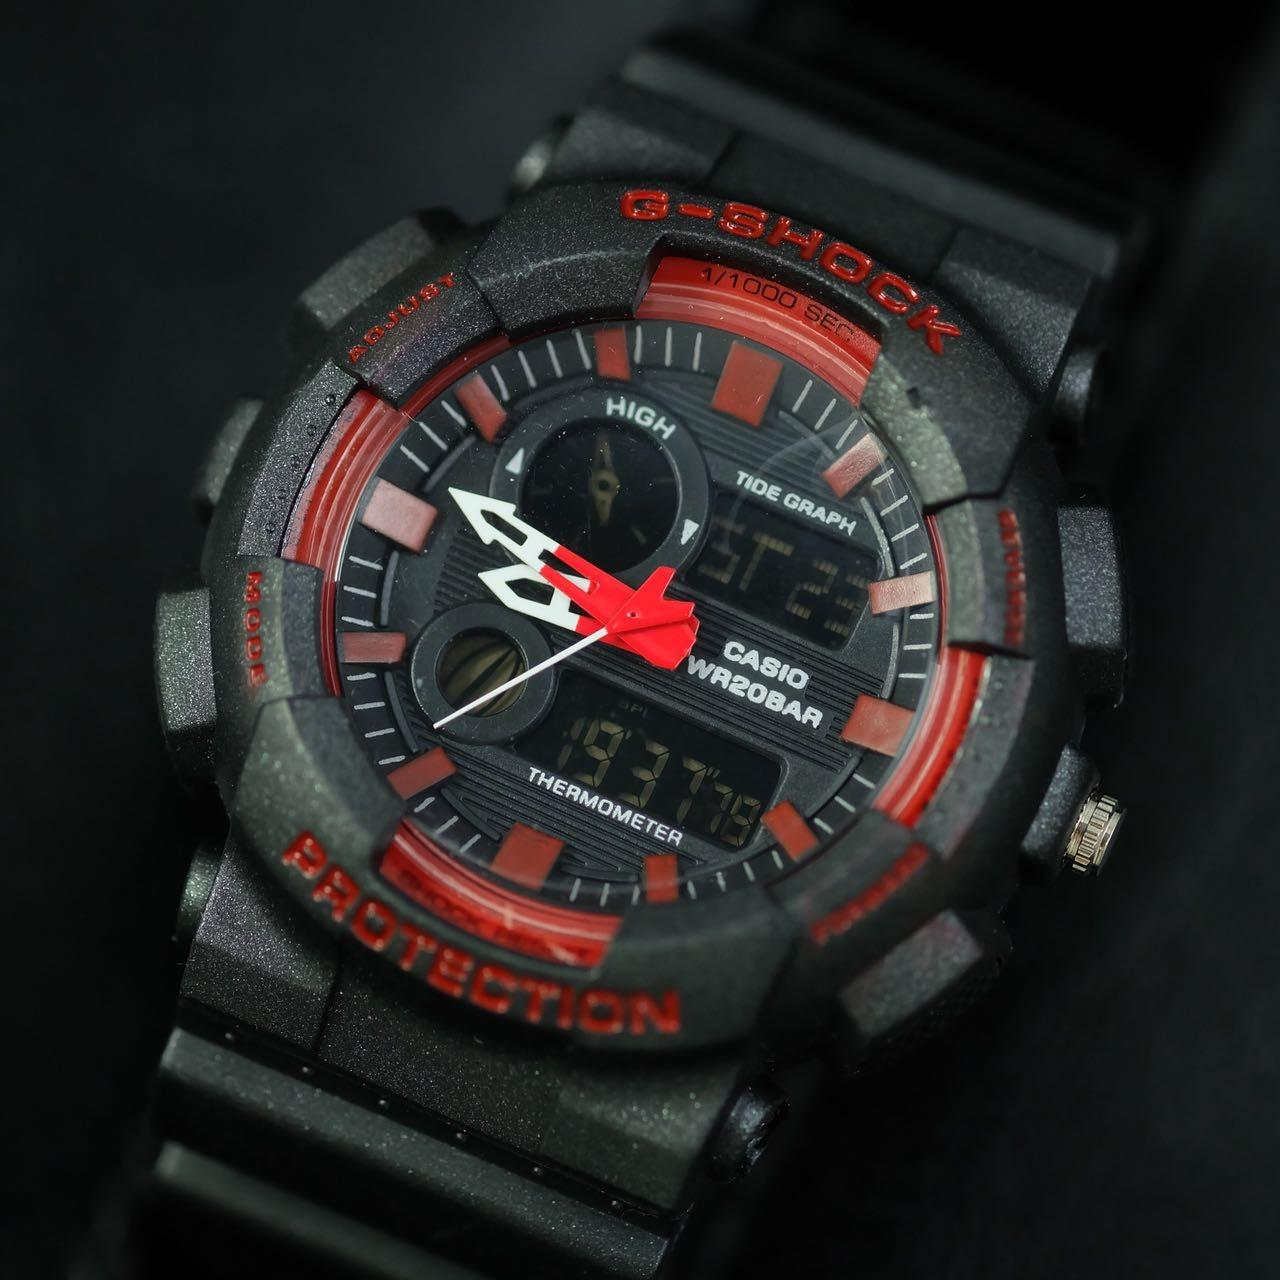 Jam Tangan Gshock G - Shock Raptors - Limited Edition Elegant Series-Pria Wanita Formal Kasual Terbaru-Women or Men Luxury Watch-Rubber Strap-Kulit Kanvas Army Kekinian Sporty Fashionable Bonus Zippo Premium Beam Korek Free Trend 2018